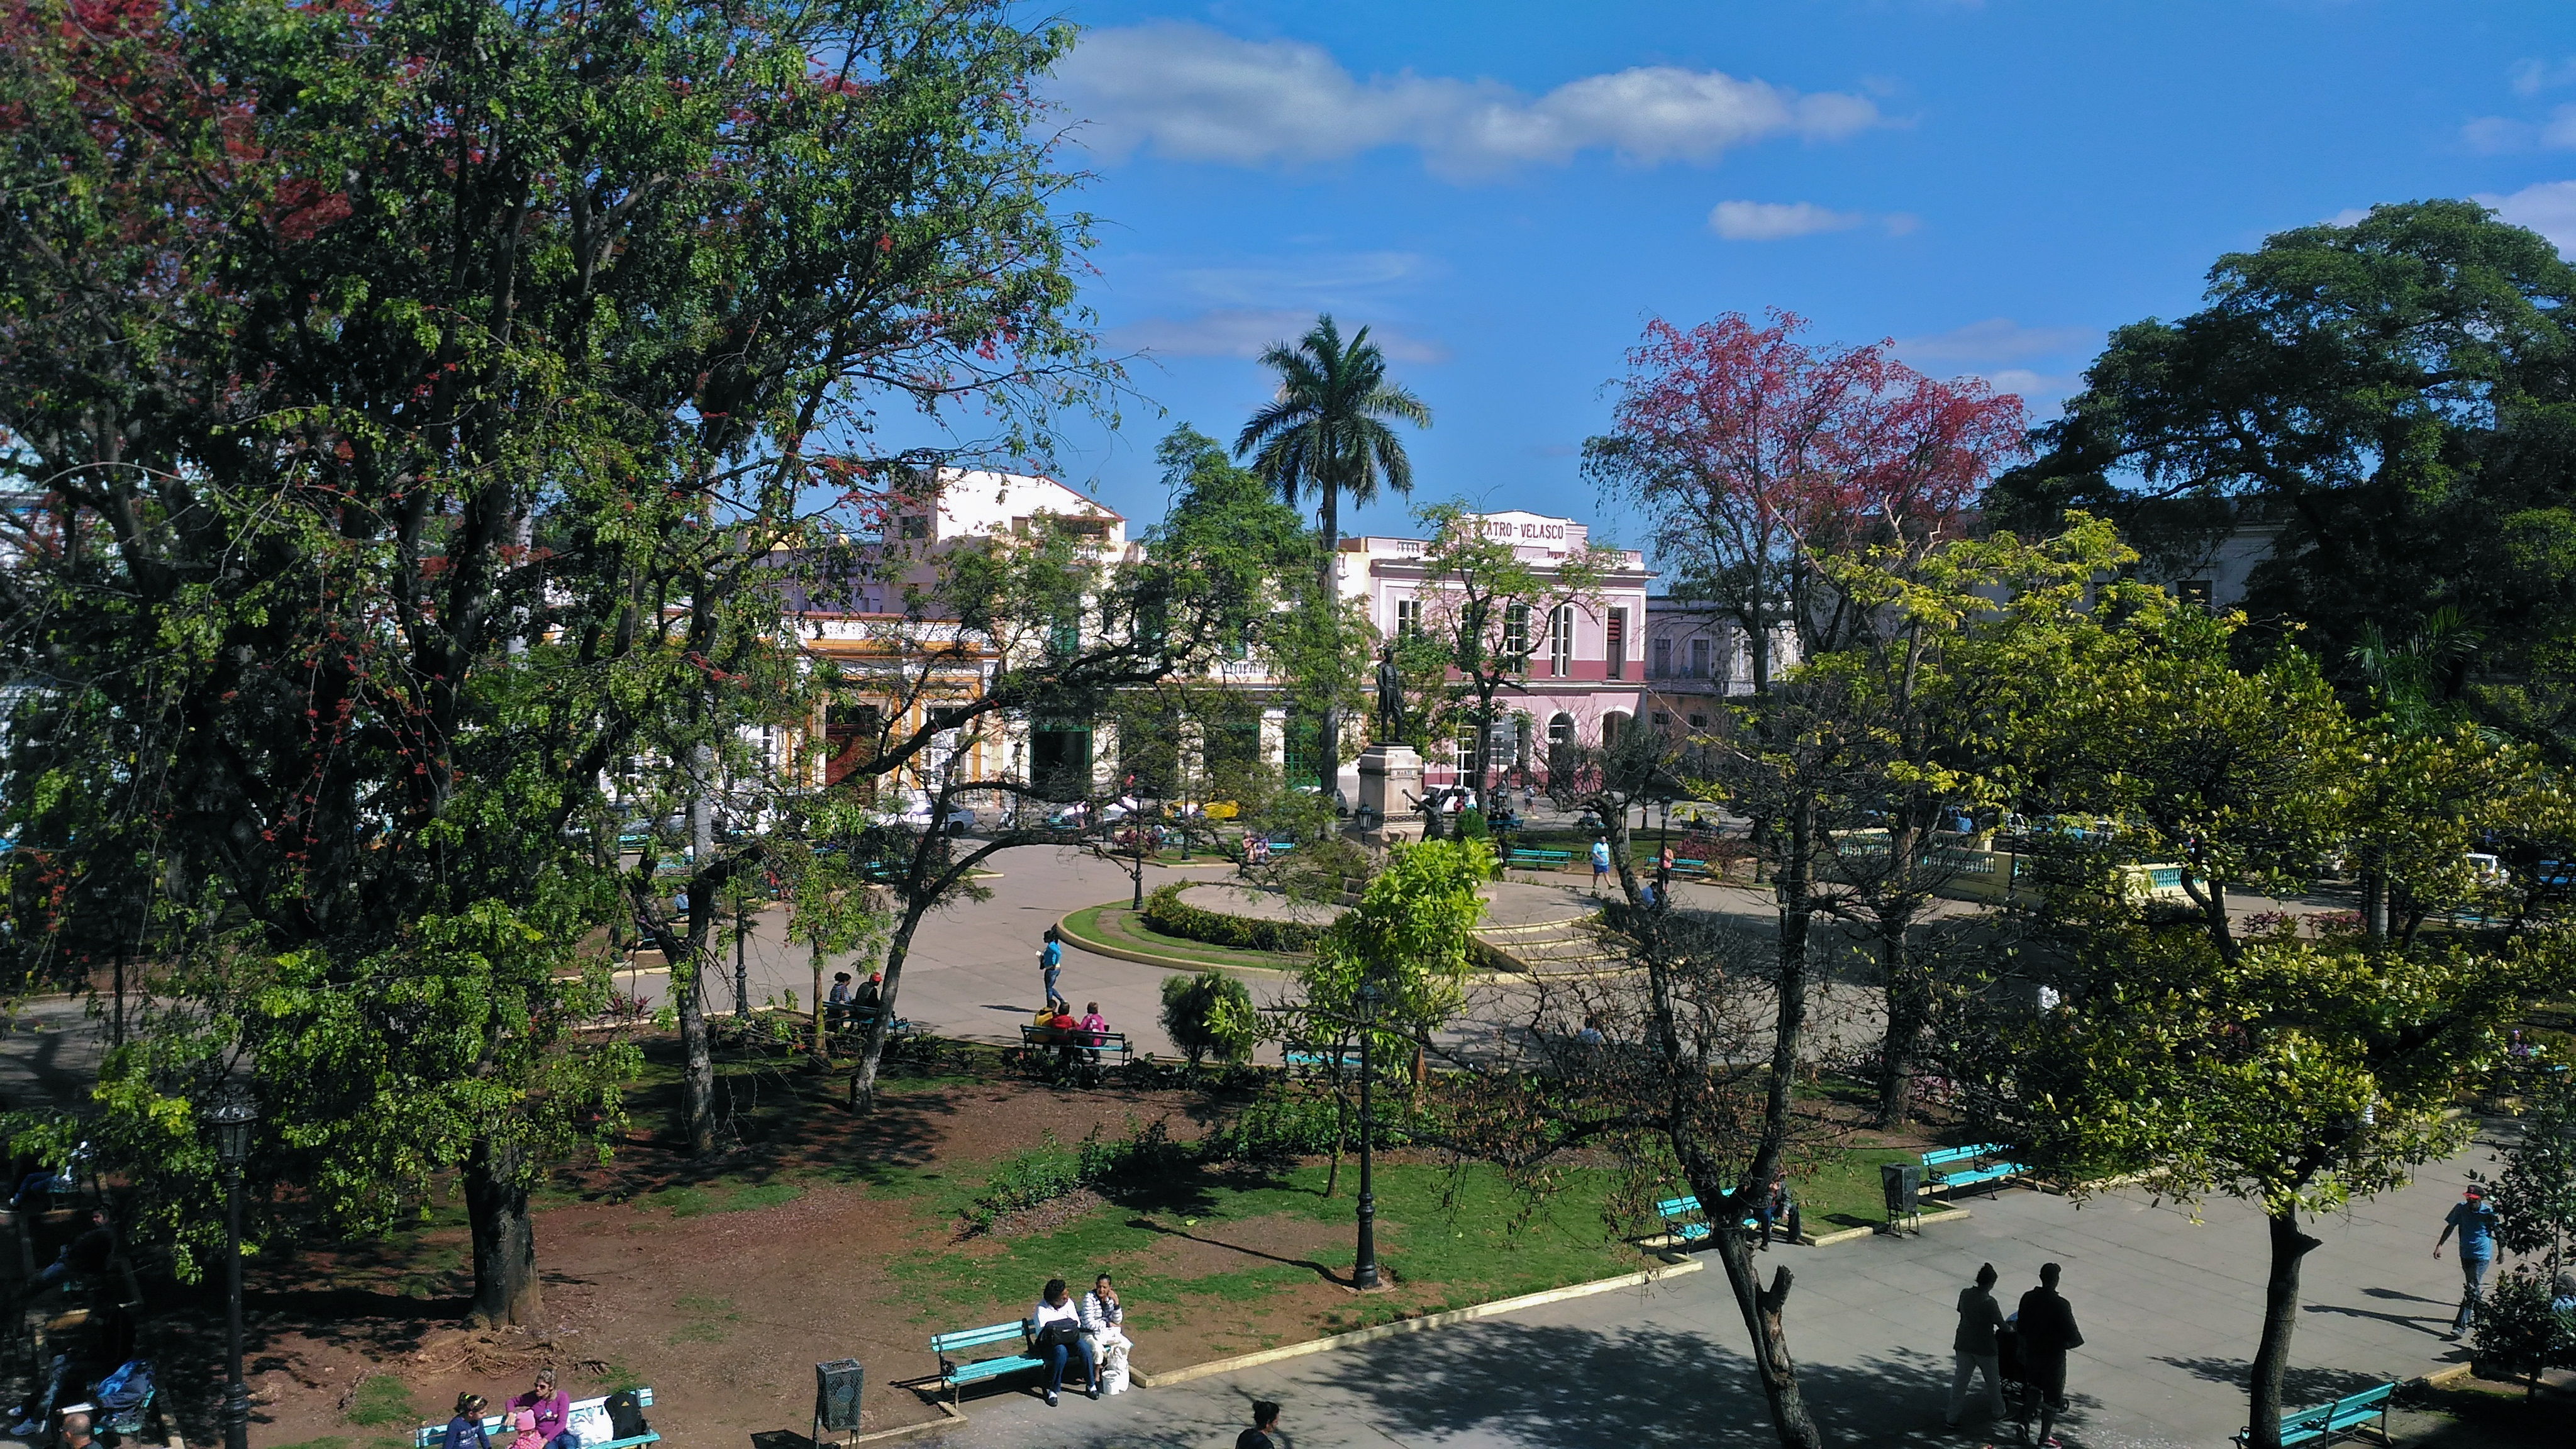 Matanzas Cuba places to visit near varadero day trips from varadero cuba travel blog for solo women